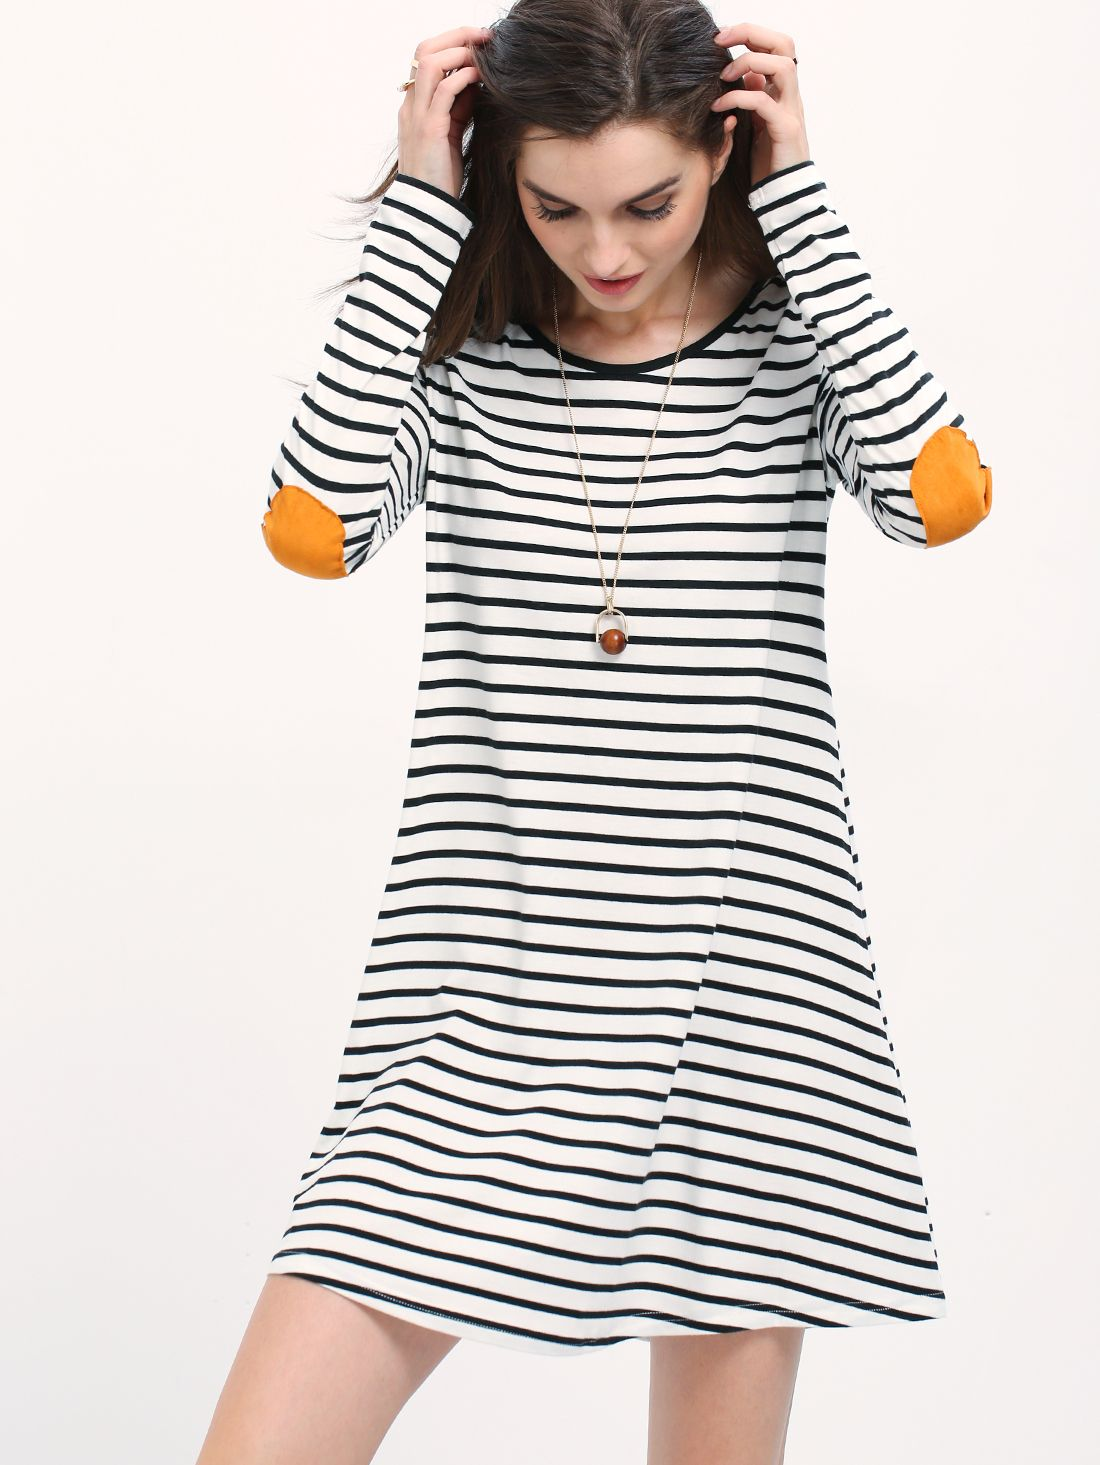 Online shopping for white striped elbow patch tshirt dress from a